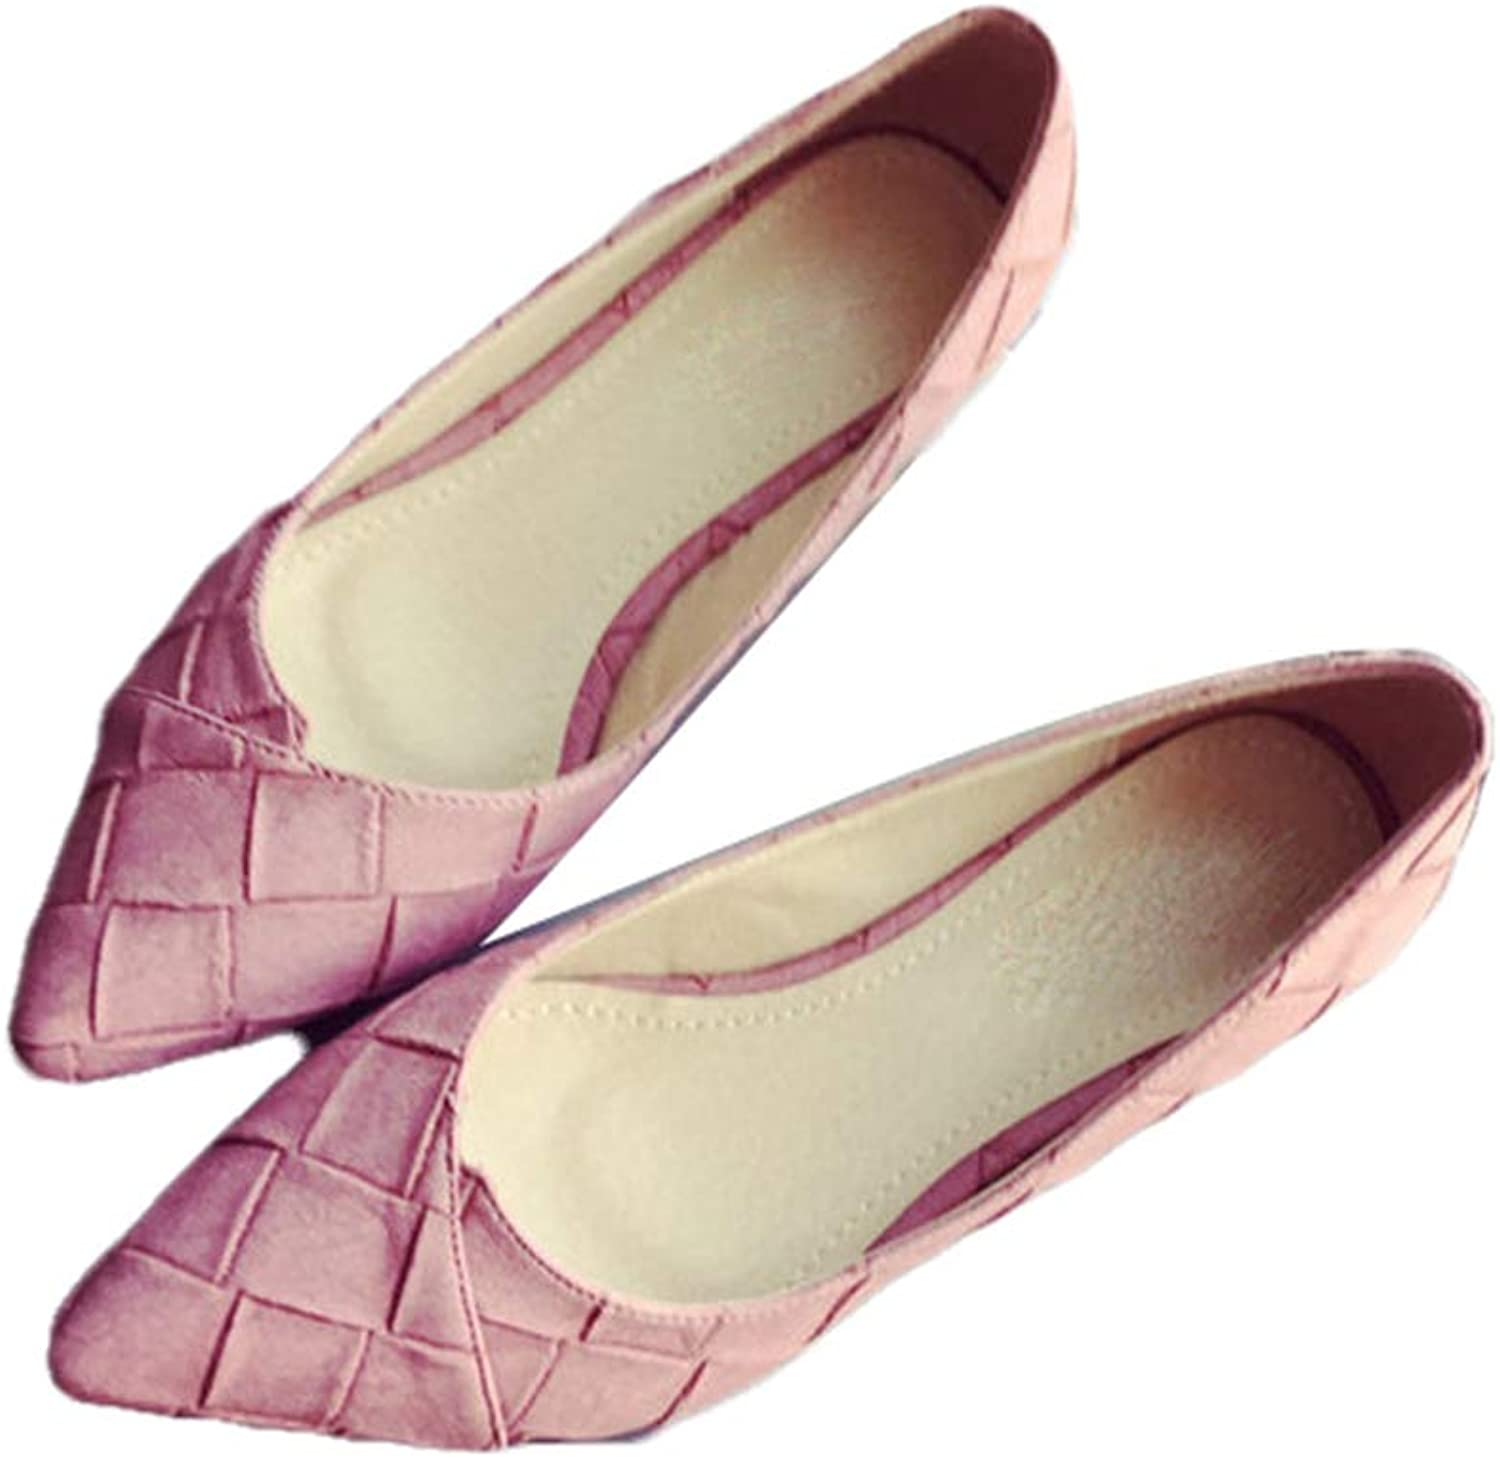 August Jim Women's Flats shoes,Pointed Toe Comfortable Wide Width Party Dress shoes